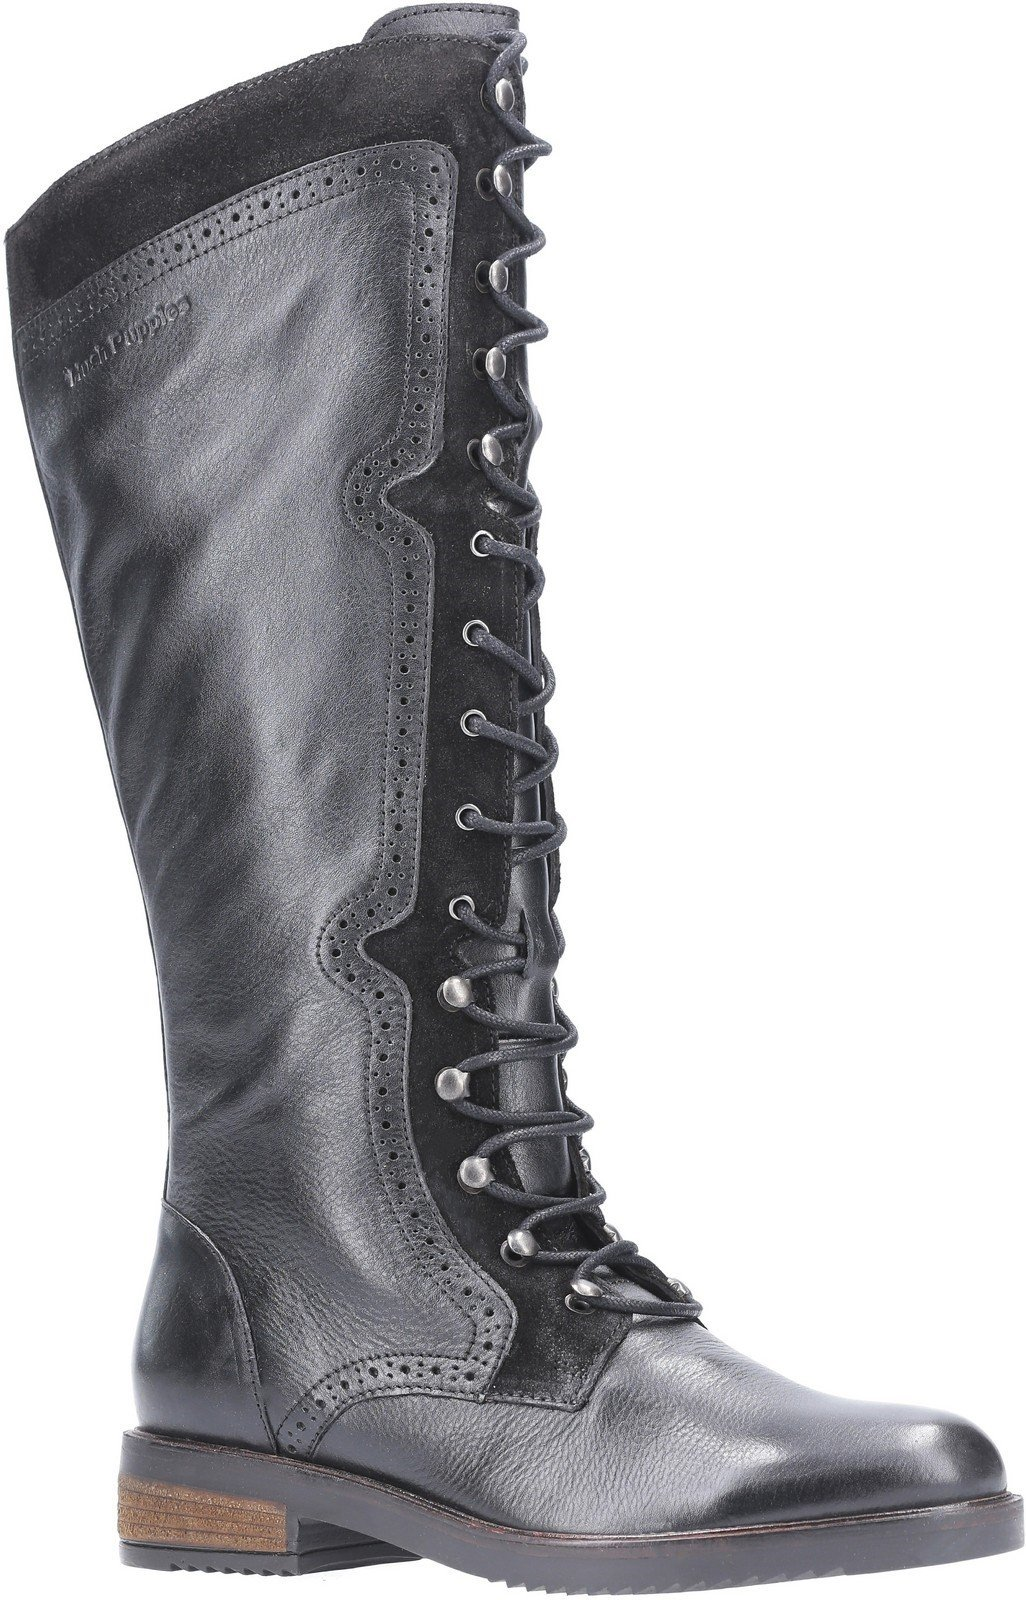 Hush Puppies Women's Rudy Zip Up Lace Up Long Boot Various Colours 29203 - Black 3